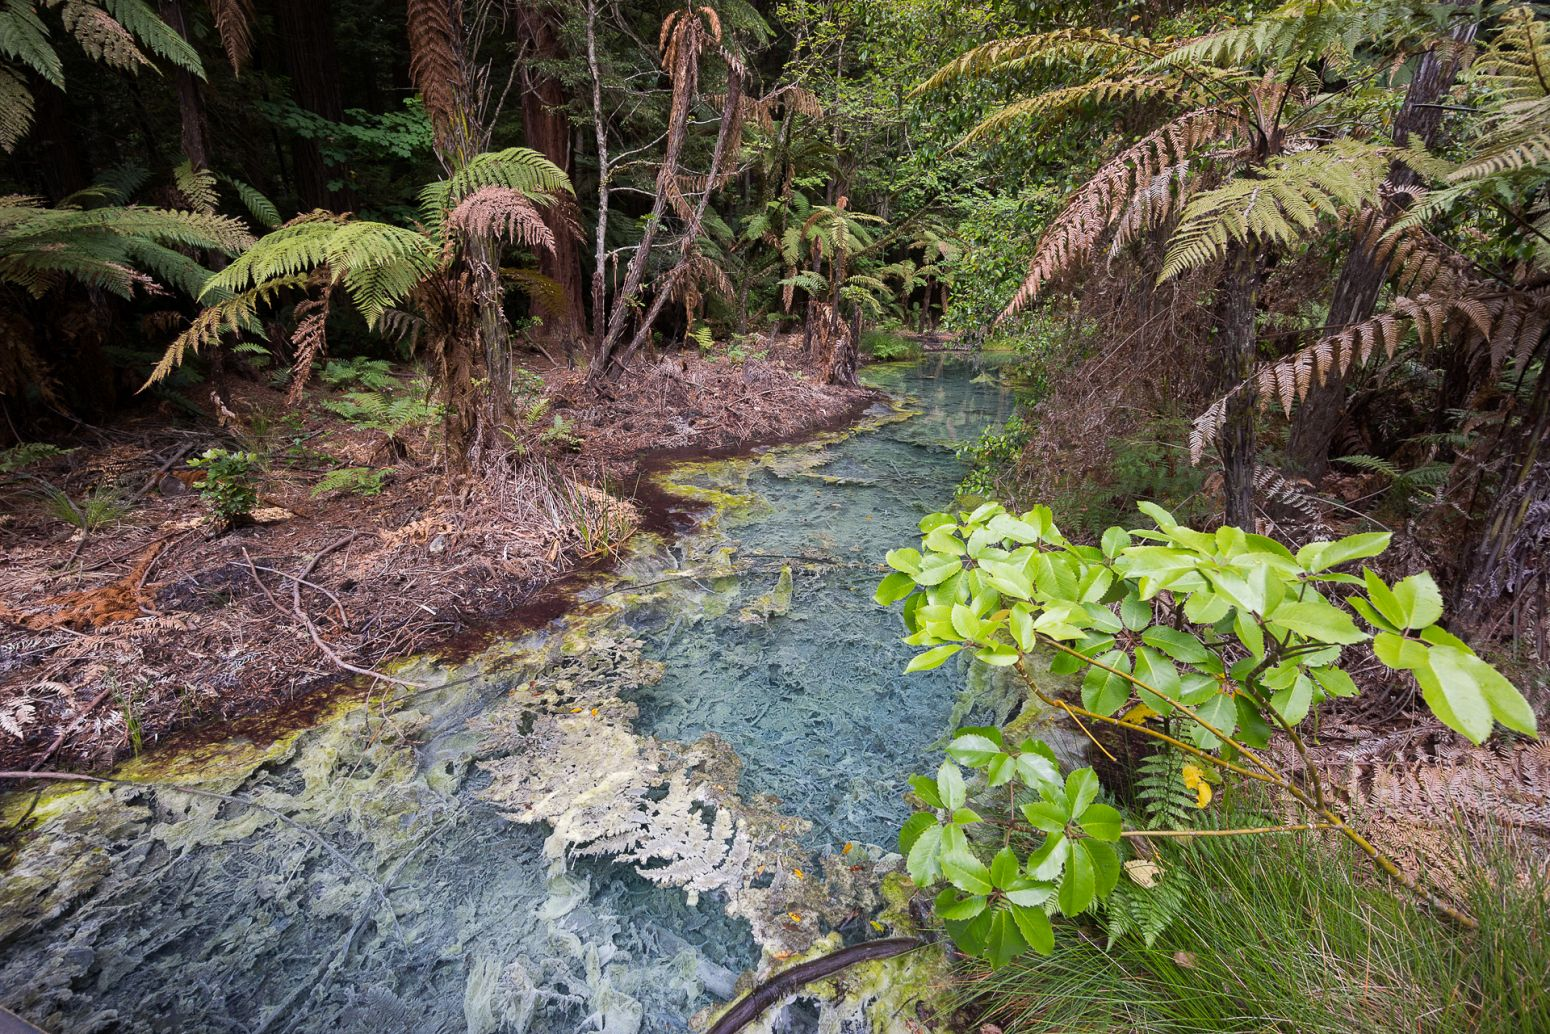 Beautiful pond inside the Redwoods Whakarewarewa Forest, Rotorua, New Zealand